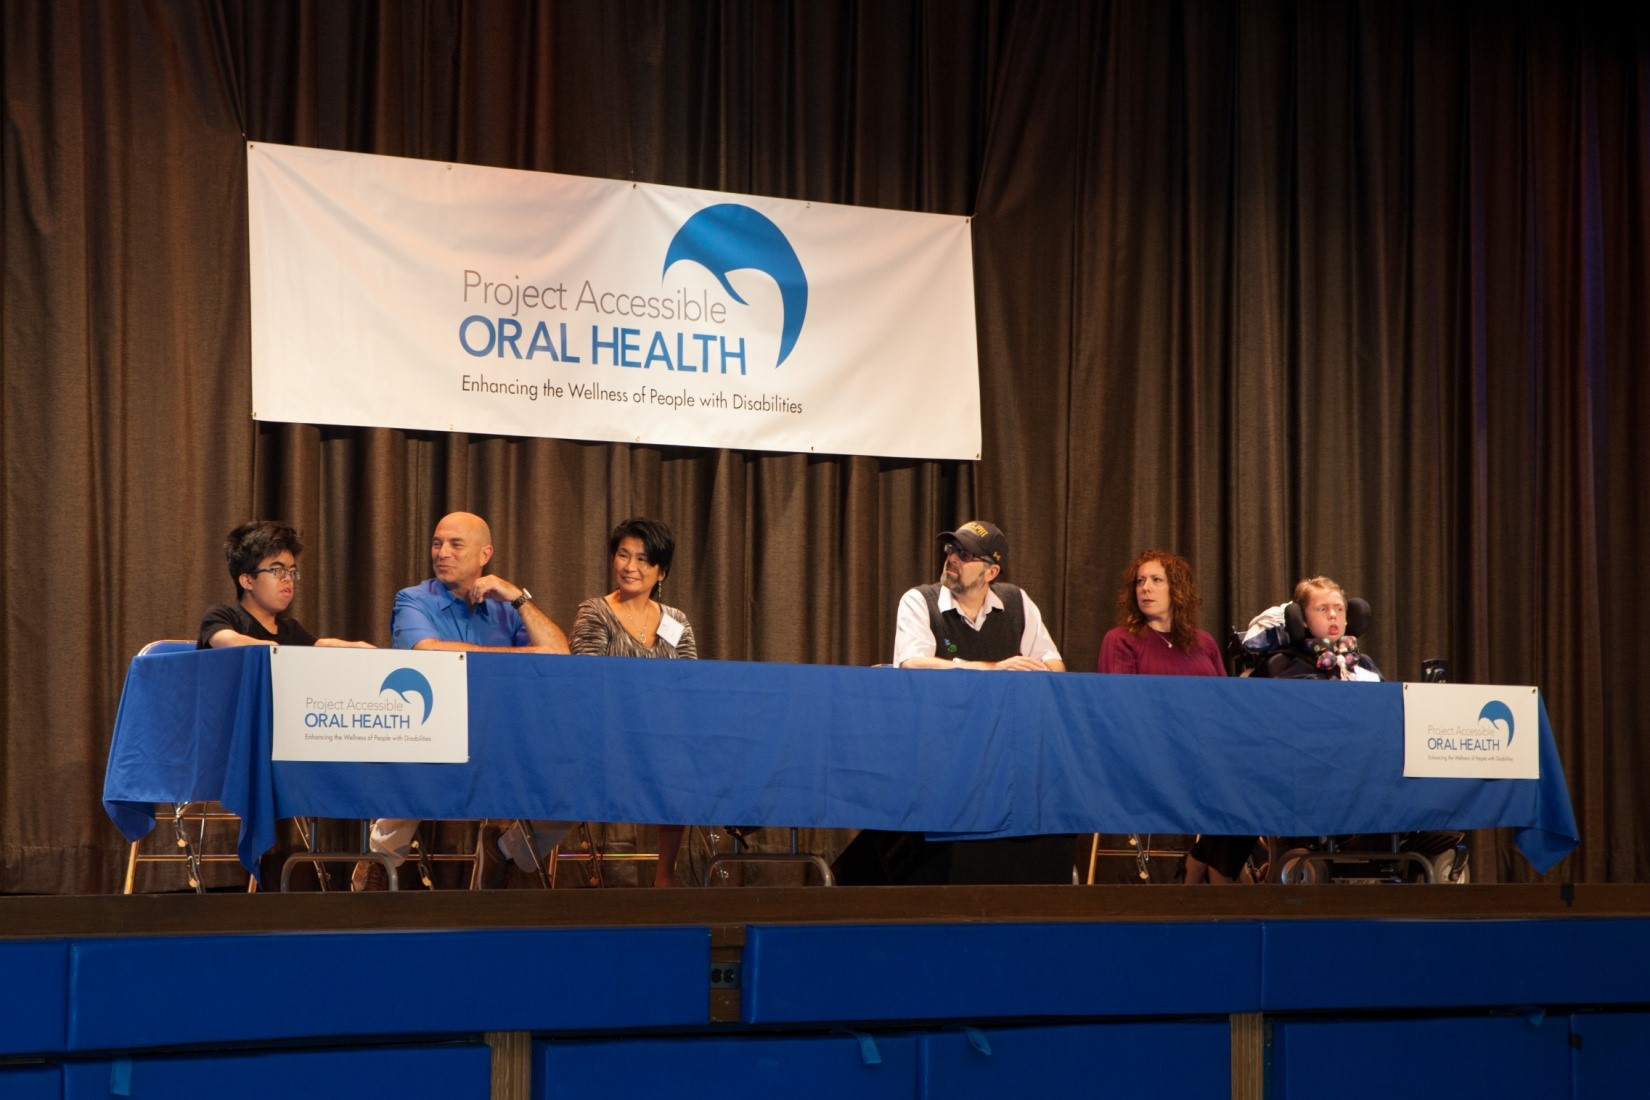 [L-R] Panelists Keanu, a student at the Henry Viscardi School at The Viscardi Center; his parents Doug Resnick and Elsie Low; Dr. Stephen Shore a globally renowned professor, author, speaker, advocate and individual on the autism spectrum; Debbie Cuevas mother to Dylan; and Dylan, a student at the Henry Viscardi School, explain the challenges they face in accessing oral healthcare.